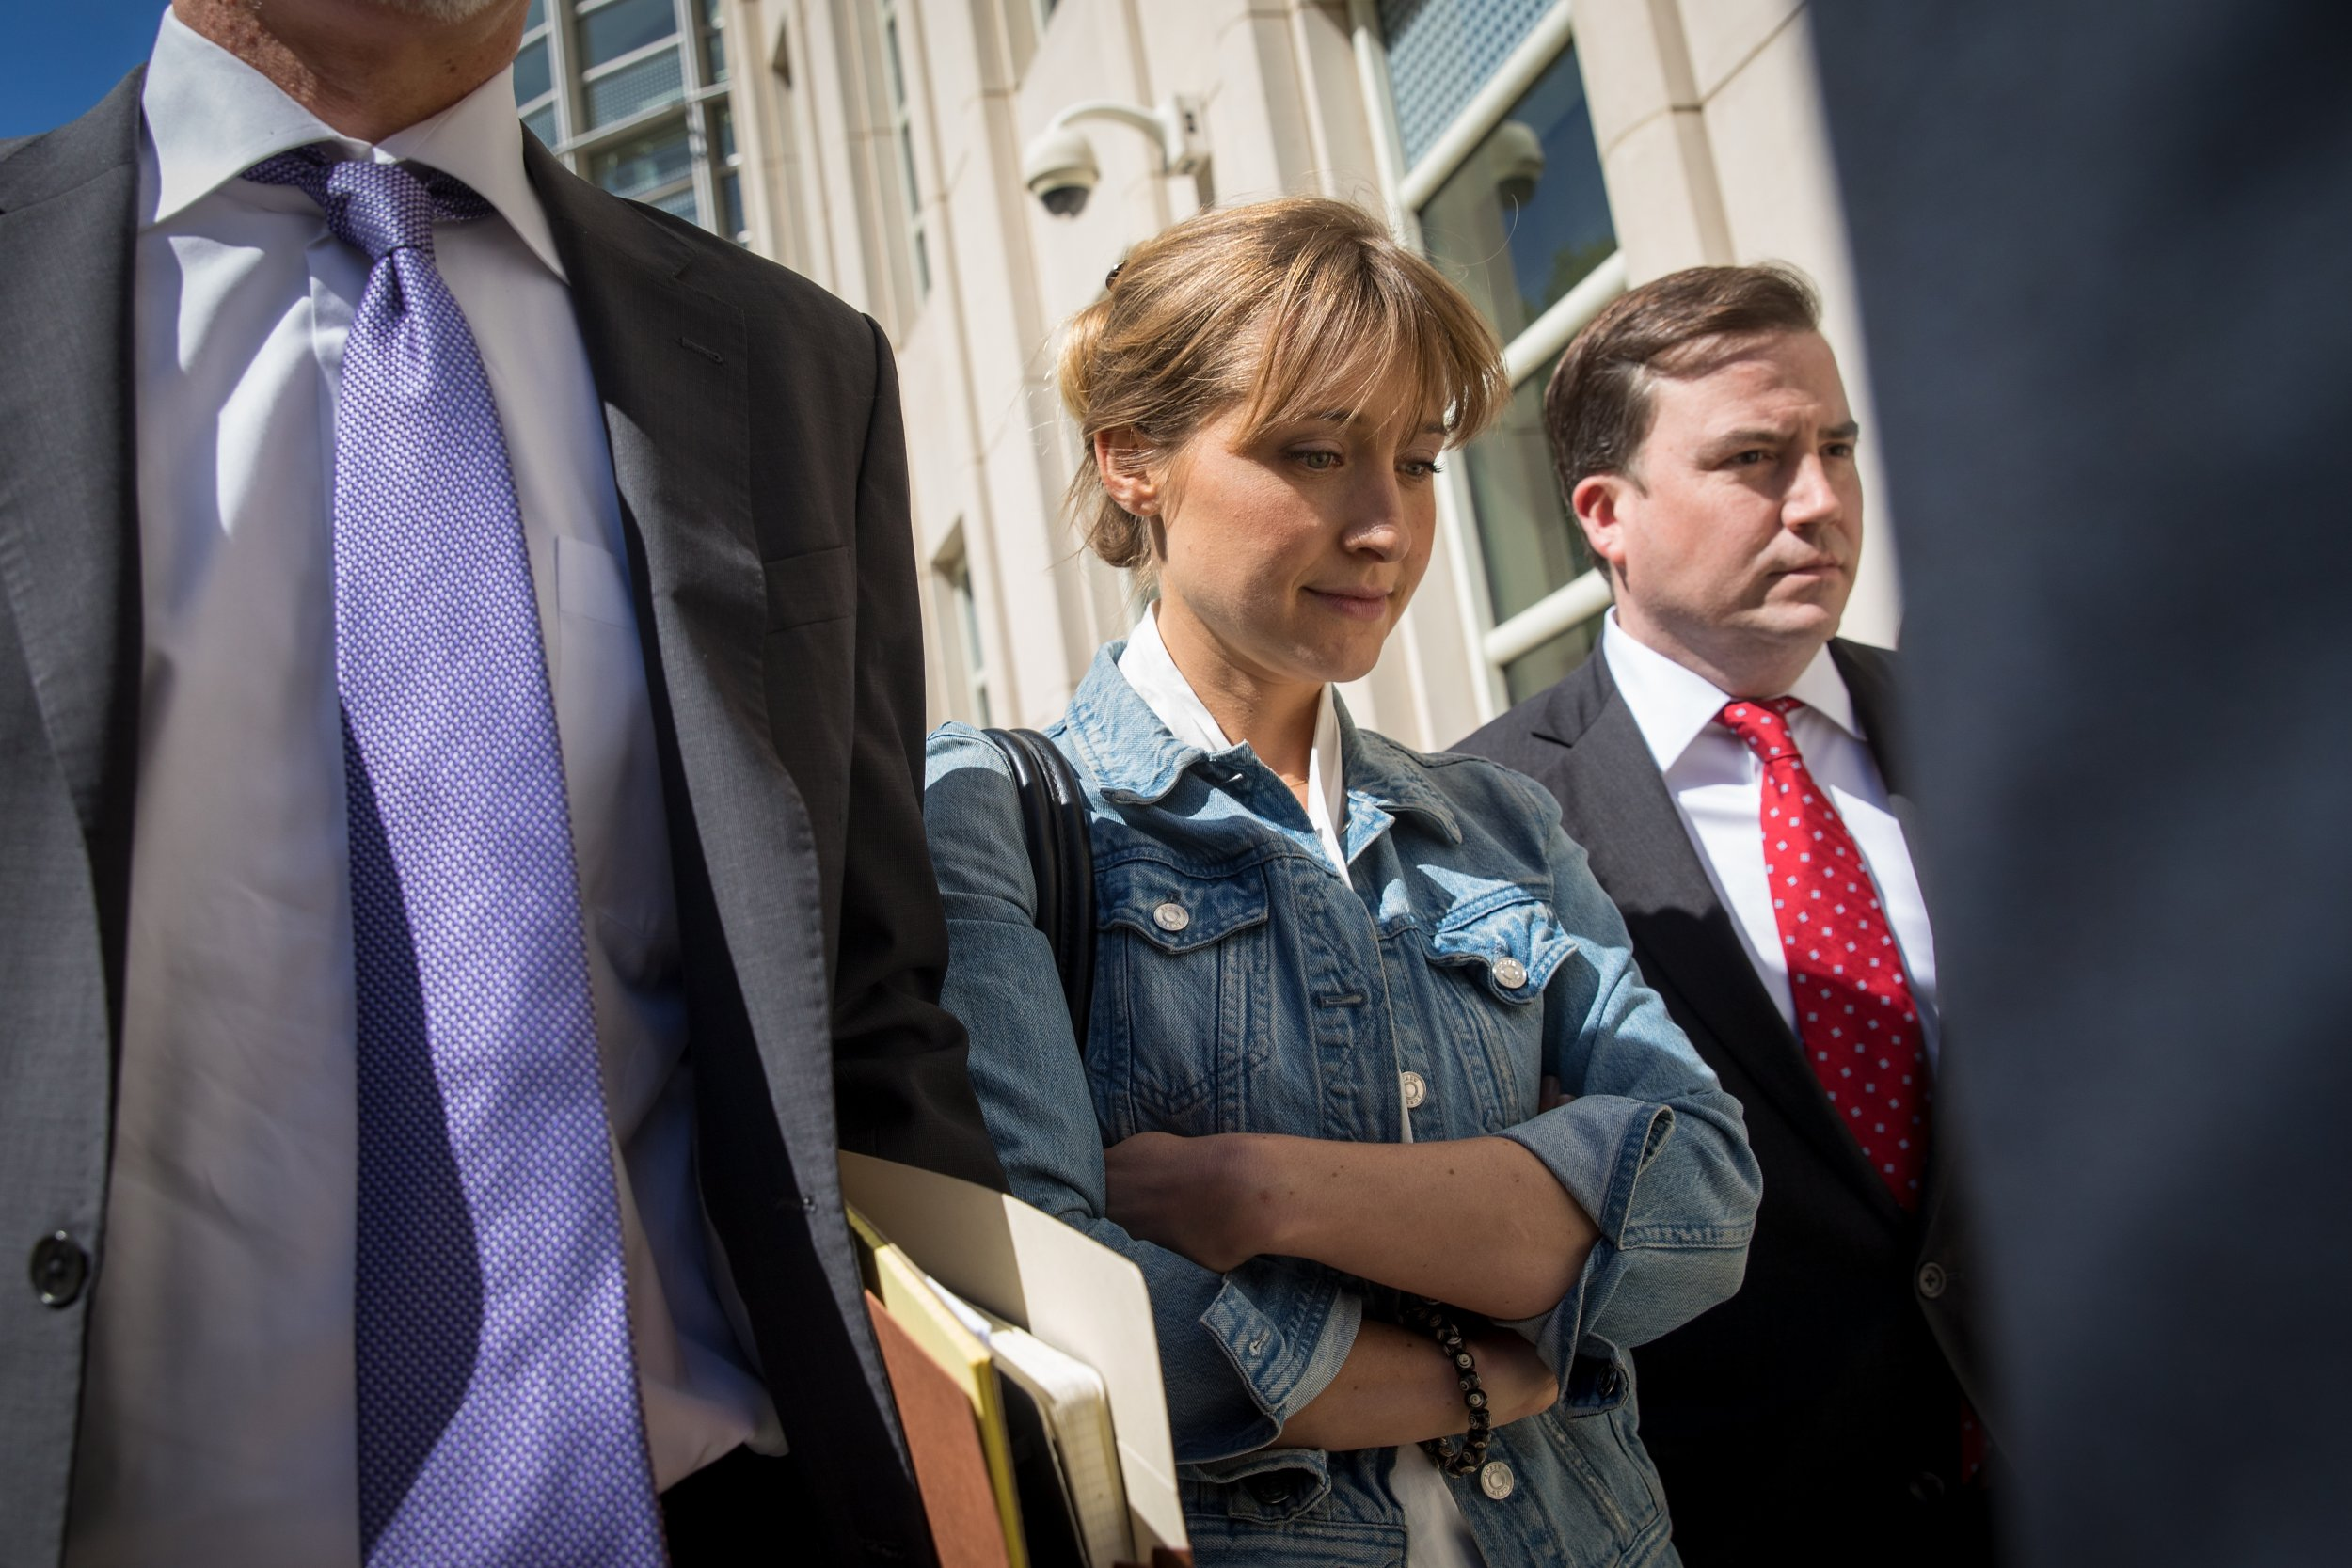 Allison Mack's Attorneys Cite Scientology to Defend Nxivm Sex Labor